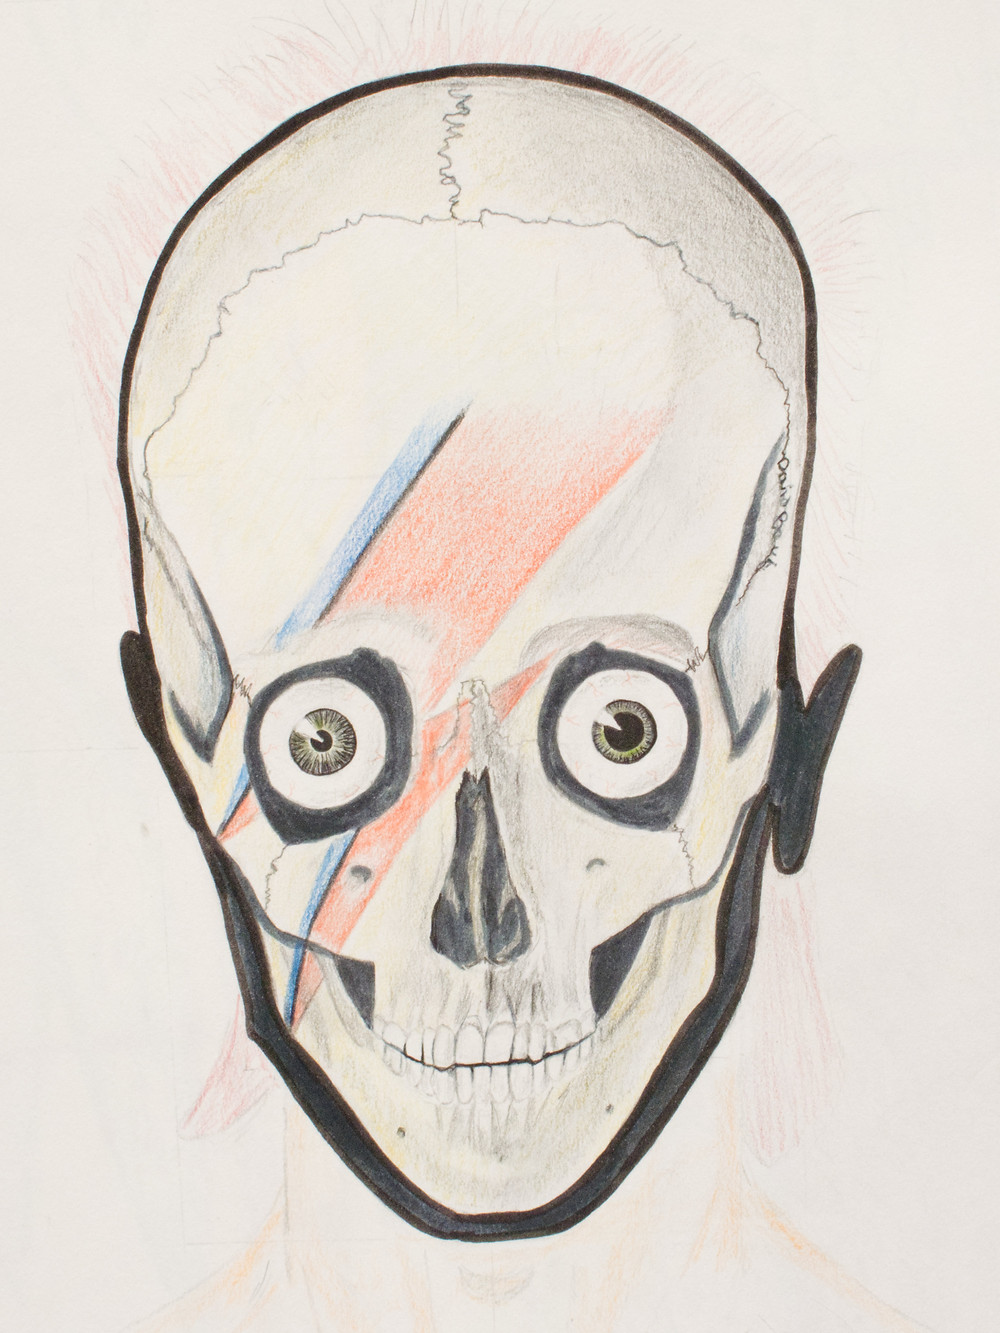 Skull with eyeballs containing different pupil sizes and red and blue thunderbolt across the skull face